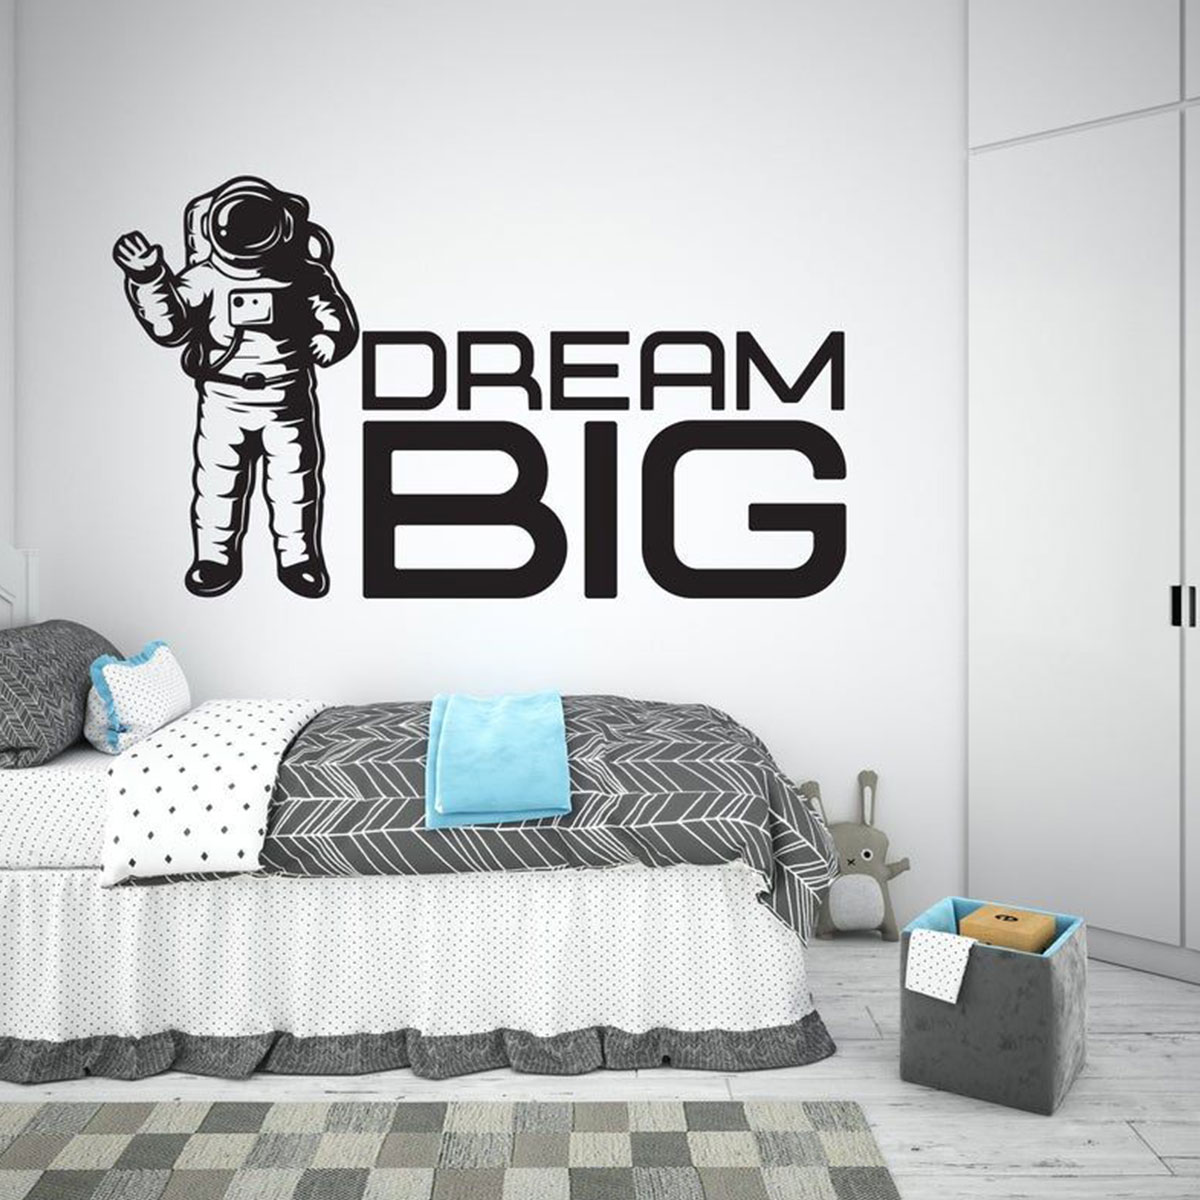 Outer Space Alien Printed Wall Decal Space Room Alien Rocket Decal Kids Space Decor Space Decal Repositionable Wall Decal